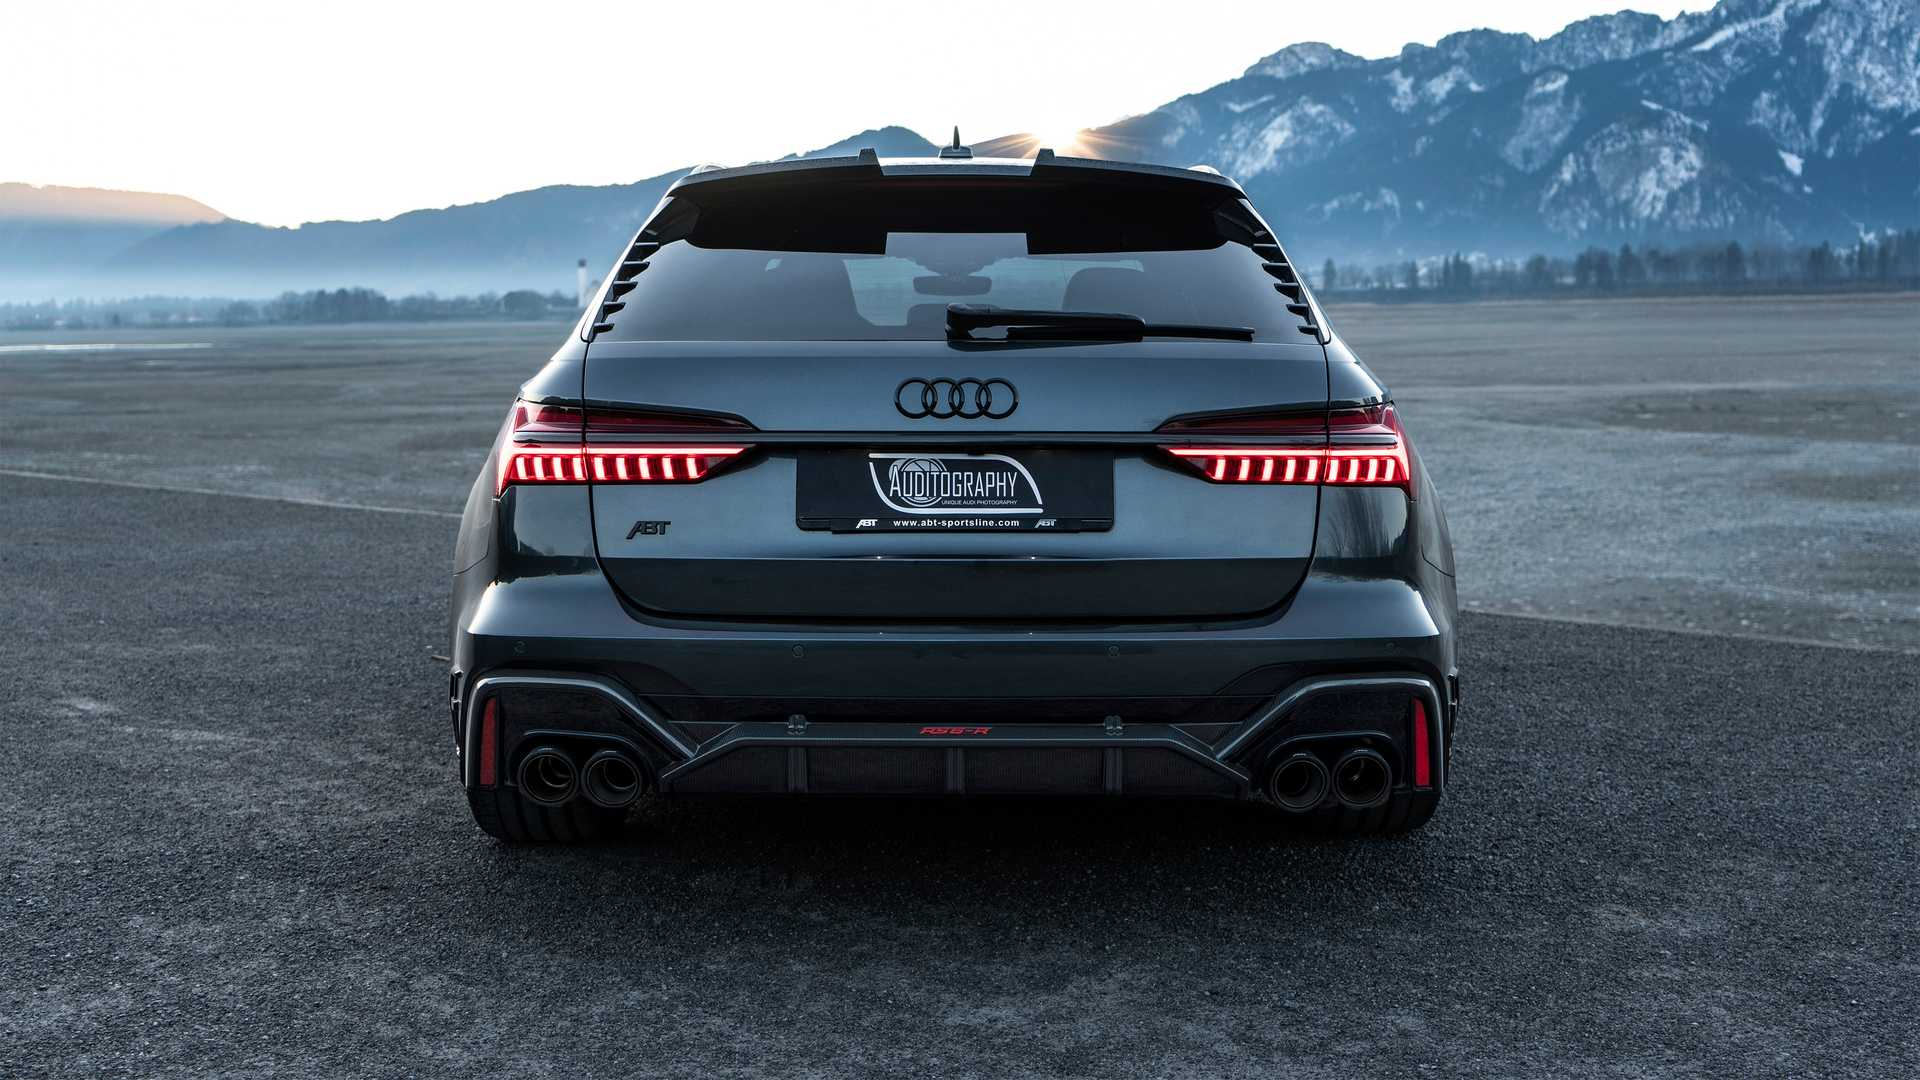 ABT_RS6-R_Auditography_0003